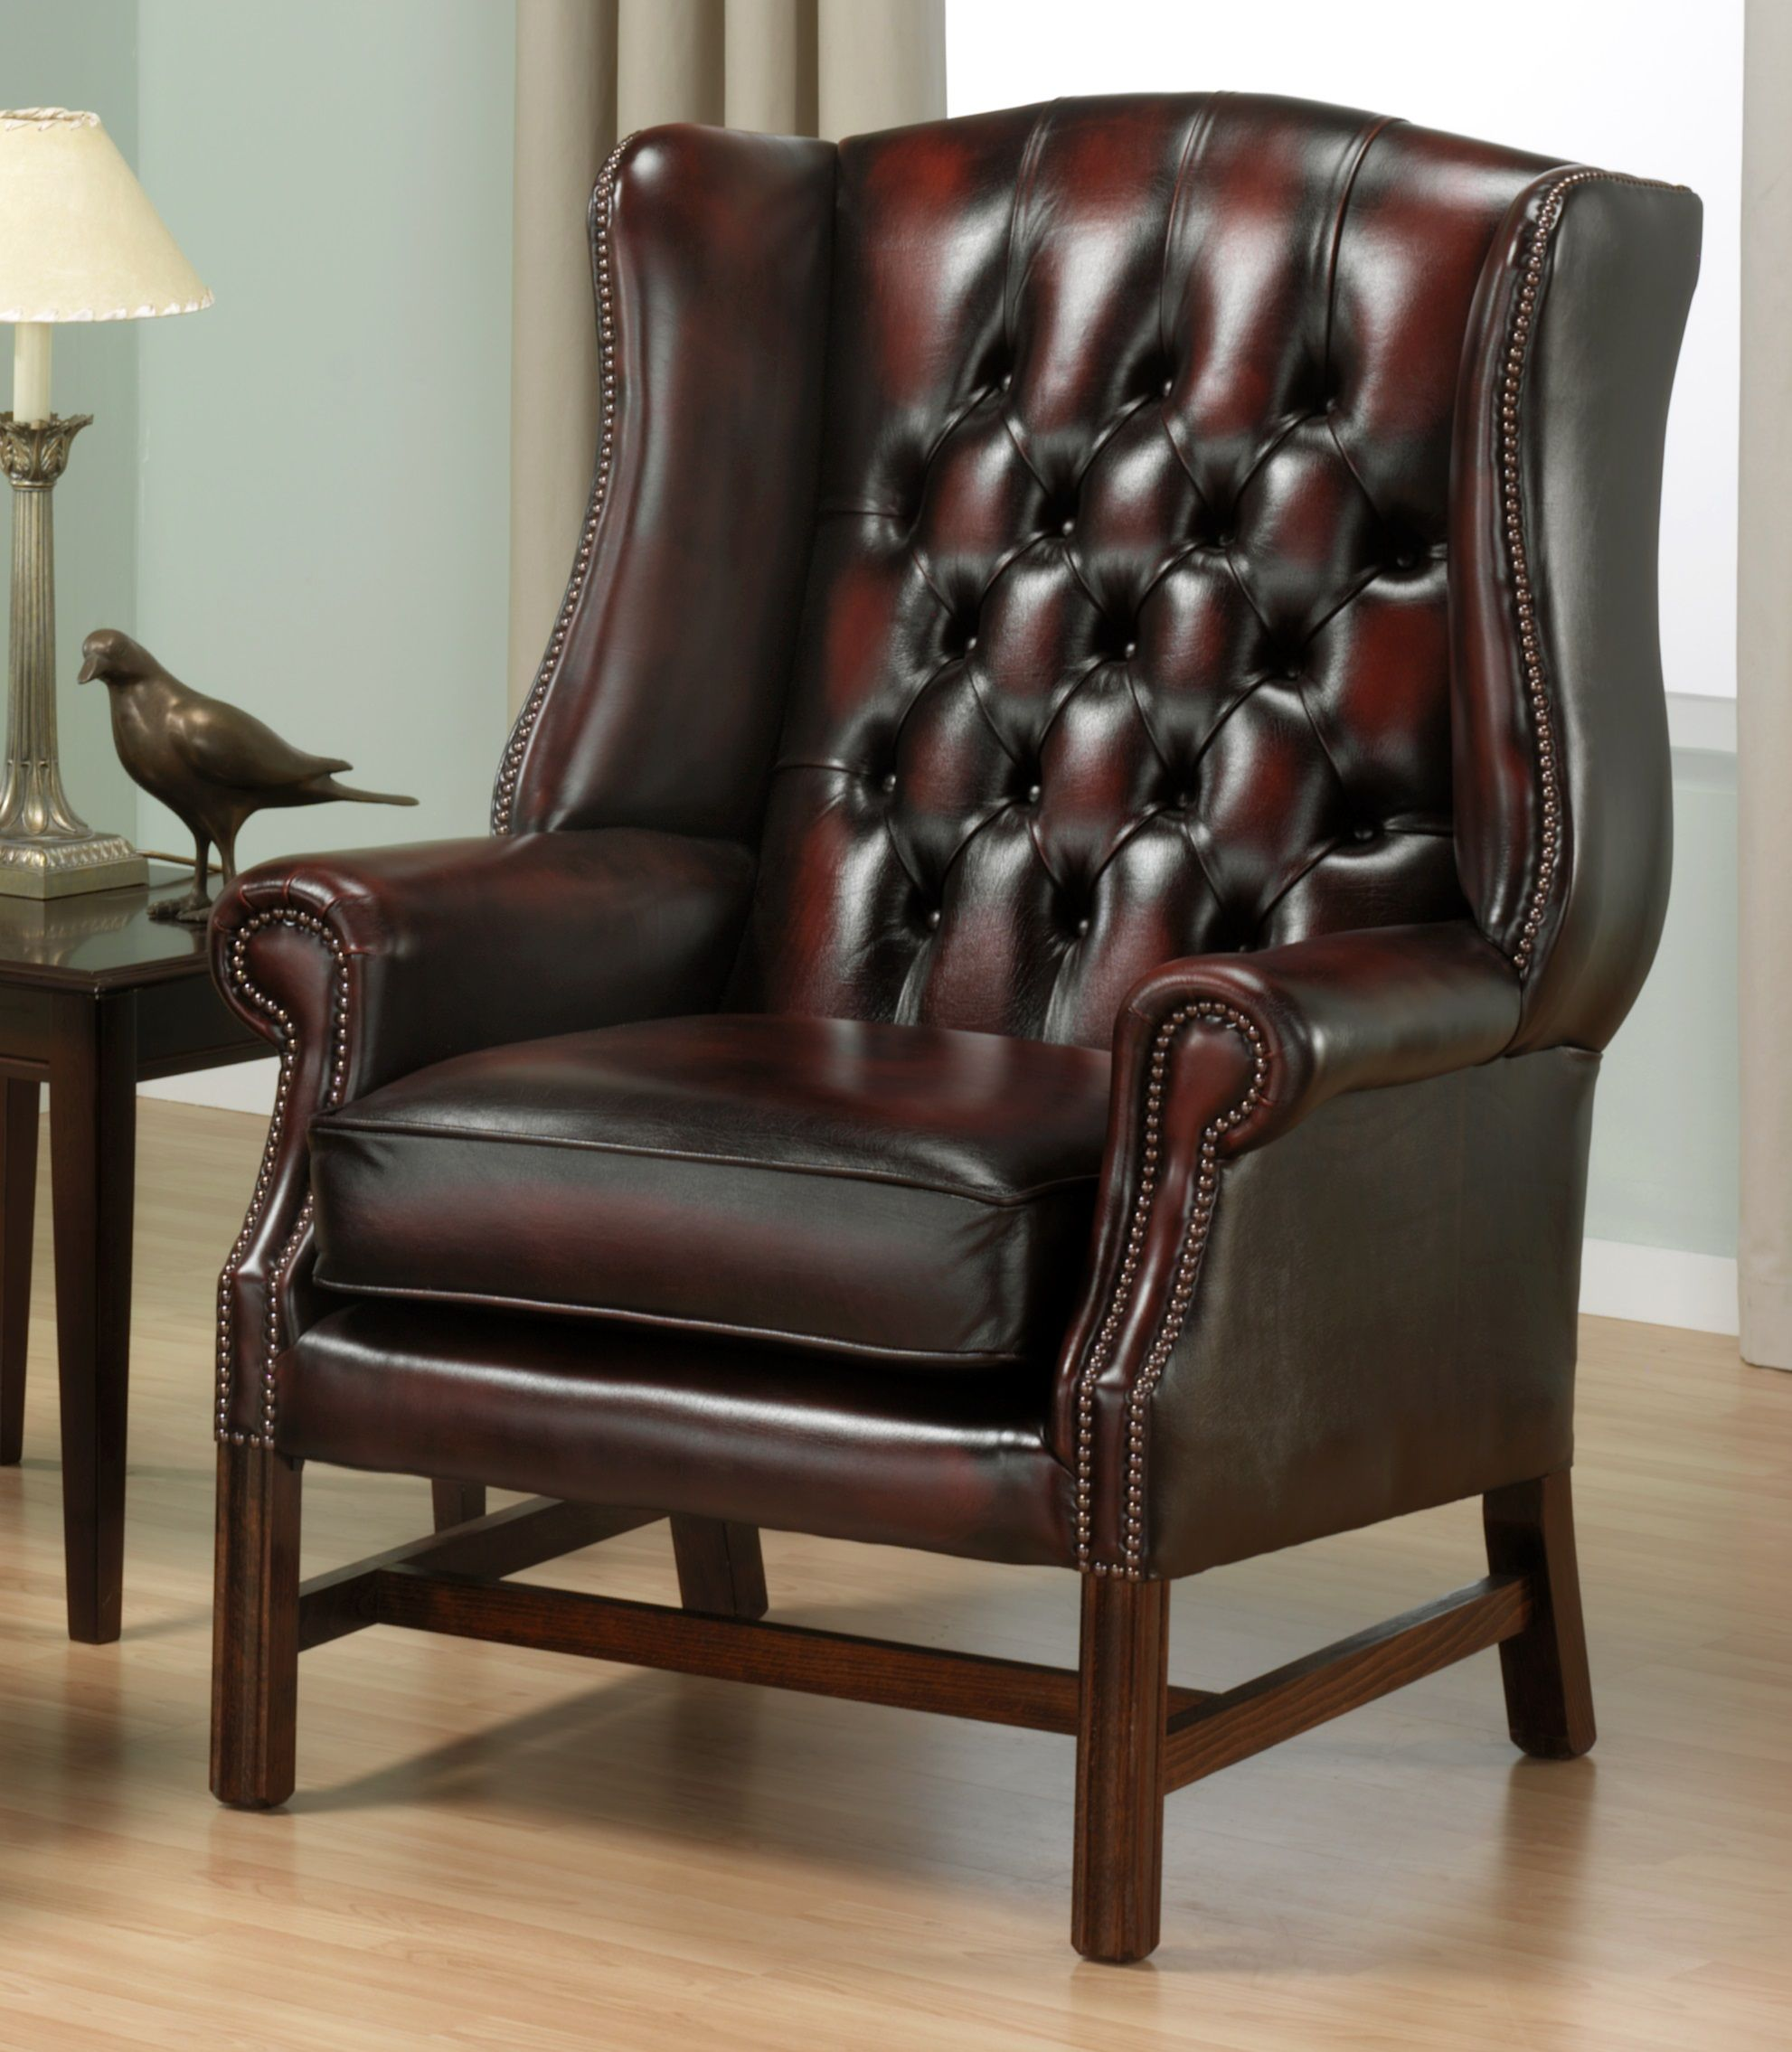 Chesterfield Sessel Weiss Holz Stuhl Wing Chair Murah Verwendet Chesterfield Stuhl Wing